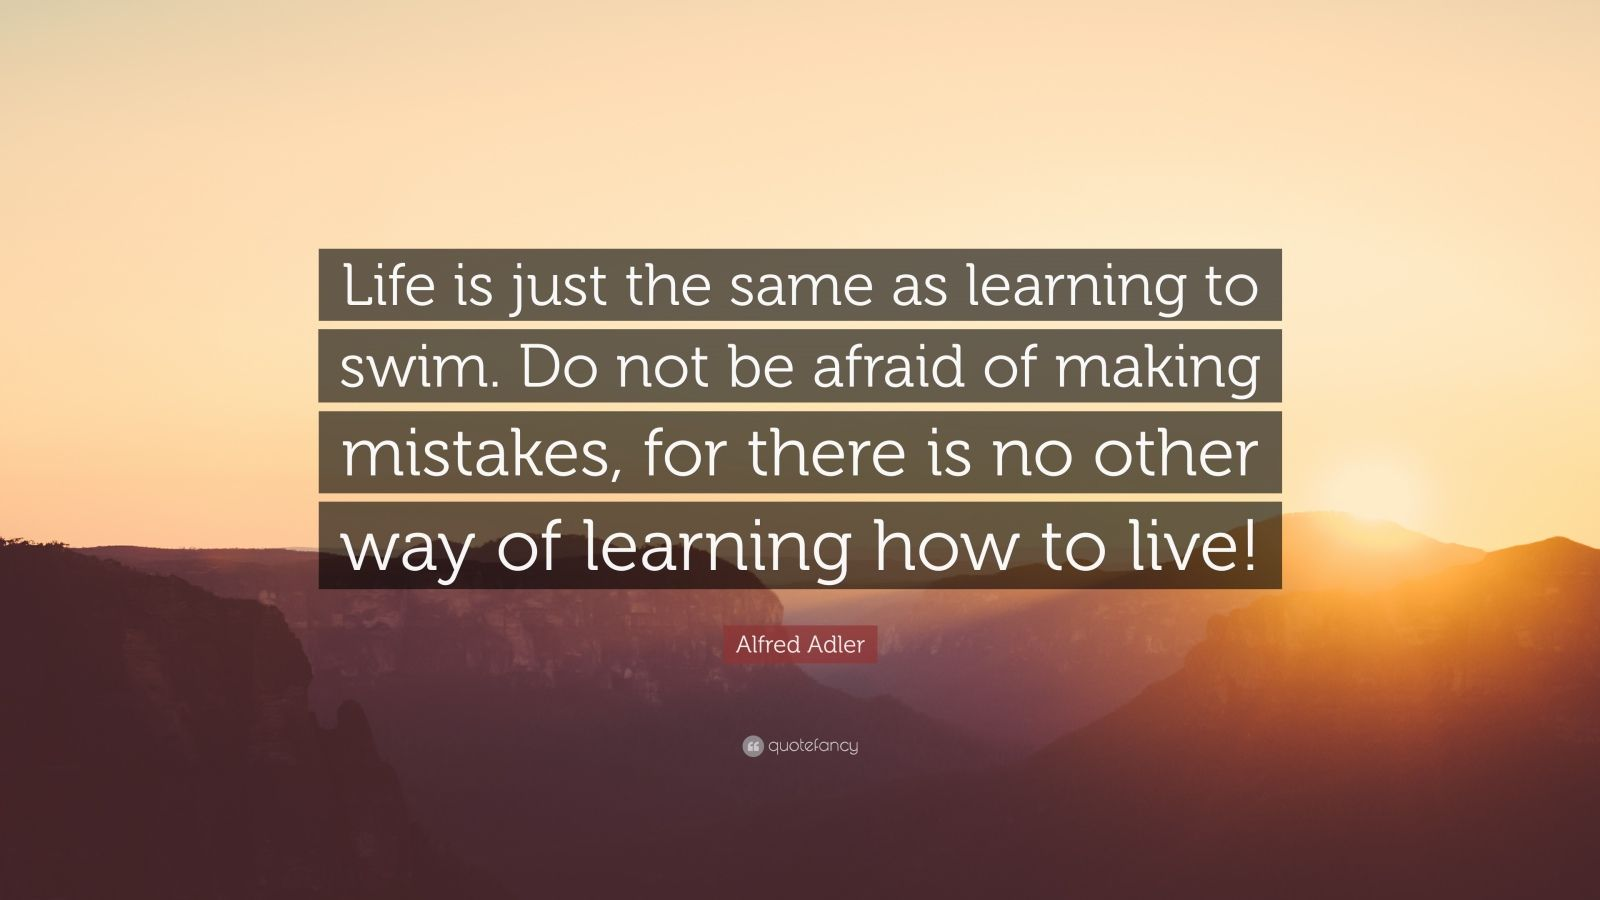 """Alfred Adler Quote: """"Life is just the same as learning to swim. Do not be afraid of making mistakes, for there is no other way of learning how to live!"""""""